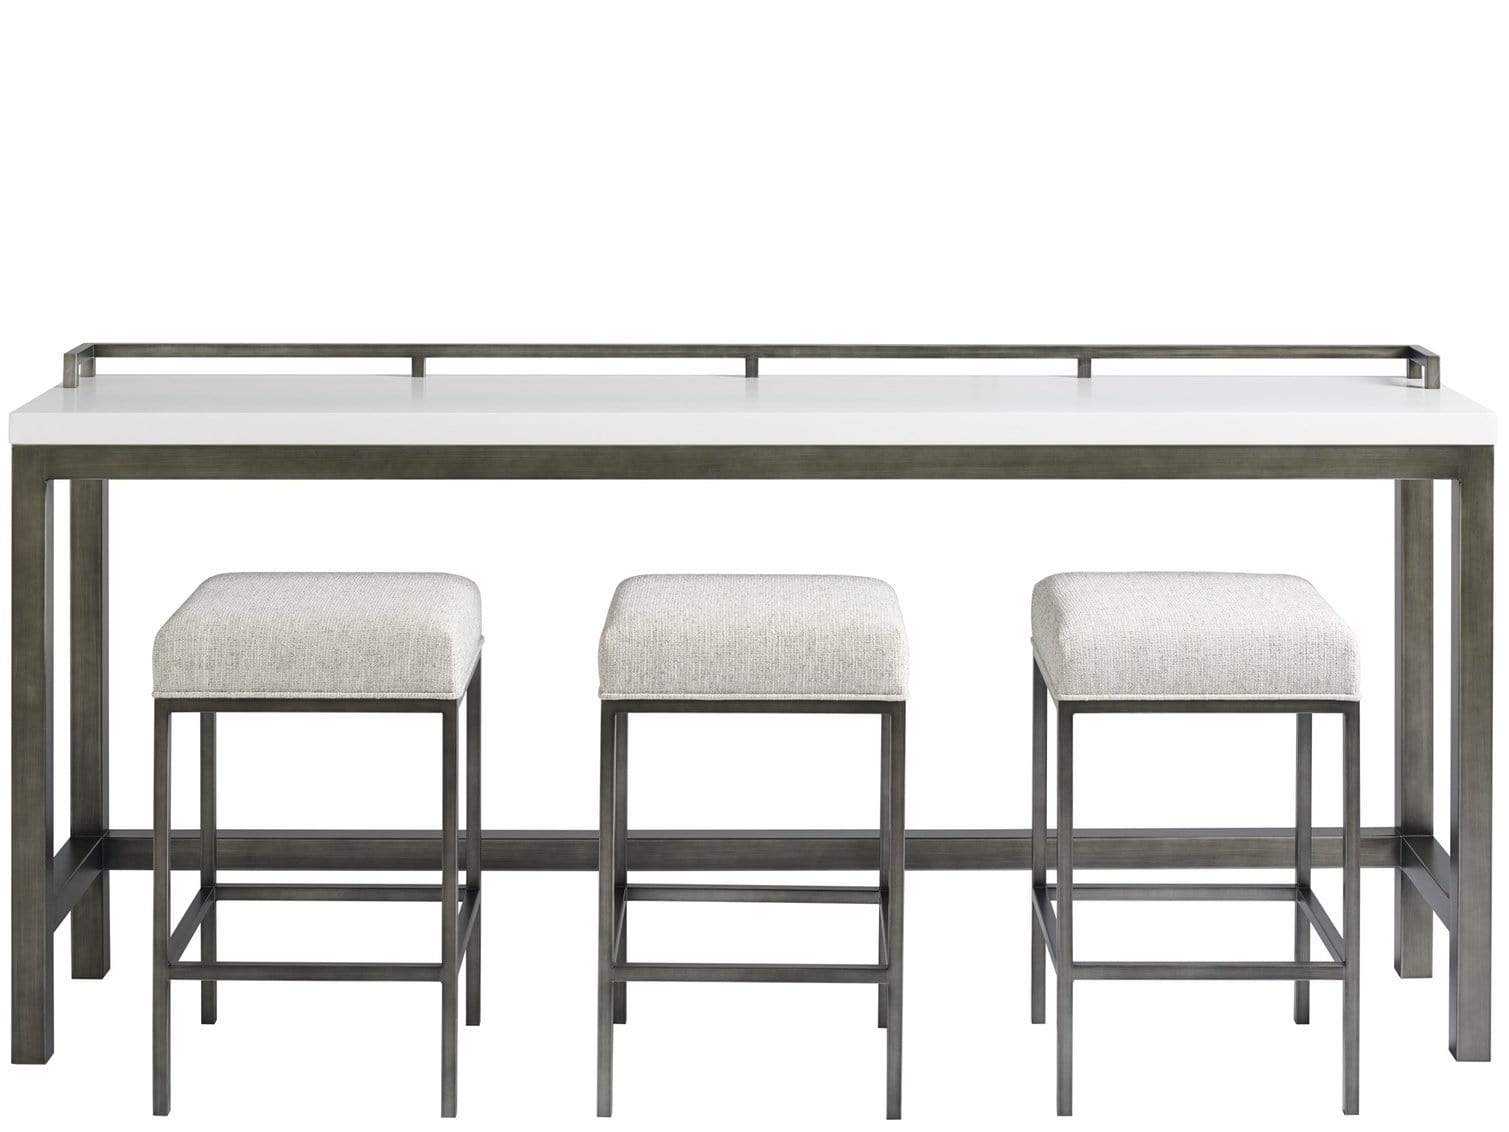 Alchemy Living Alchemy Living Gallery Engage Console Table w/Stools - White 915X803